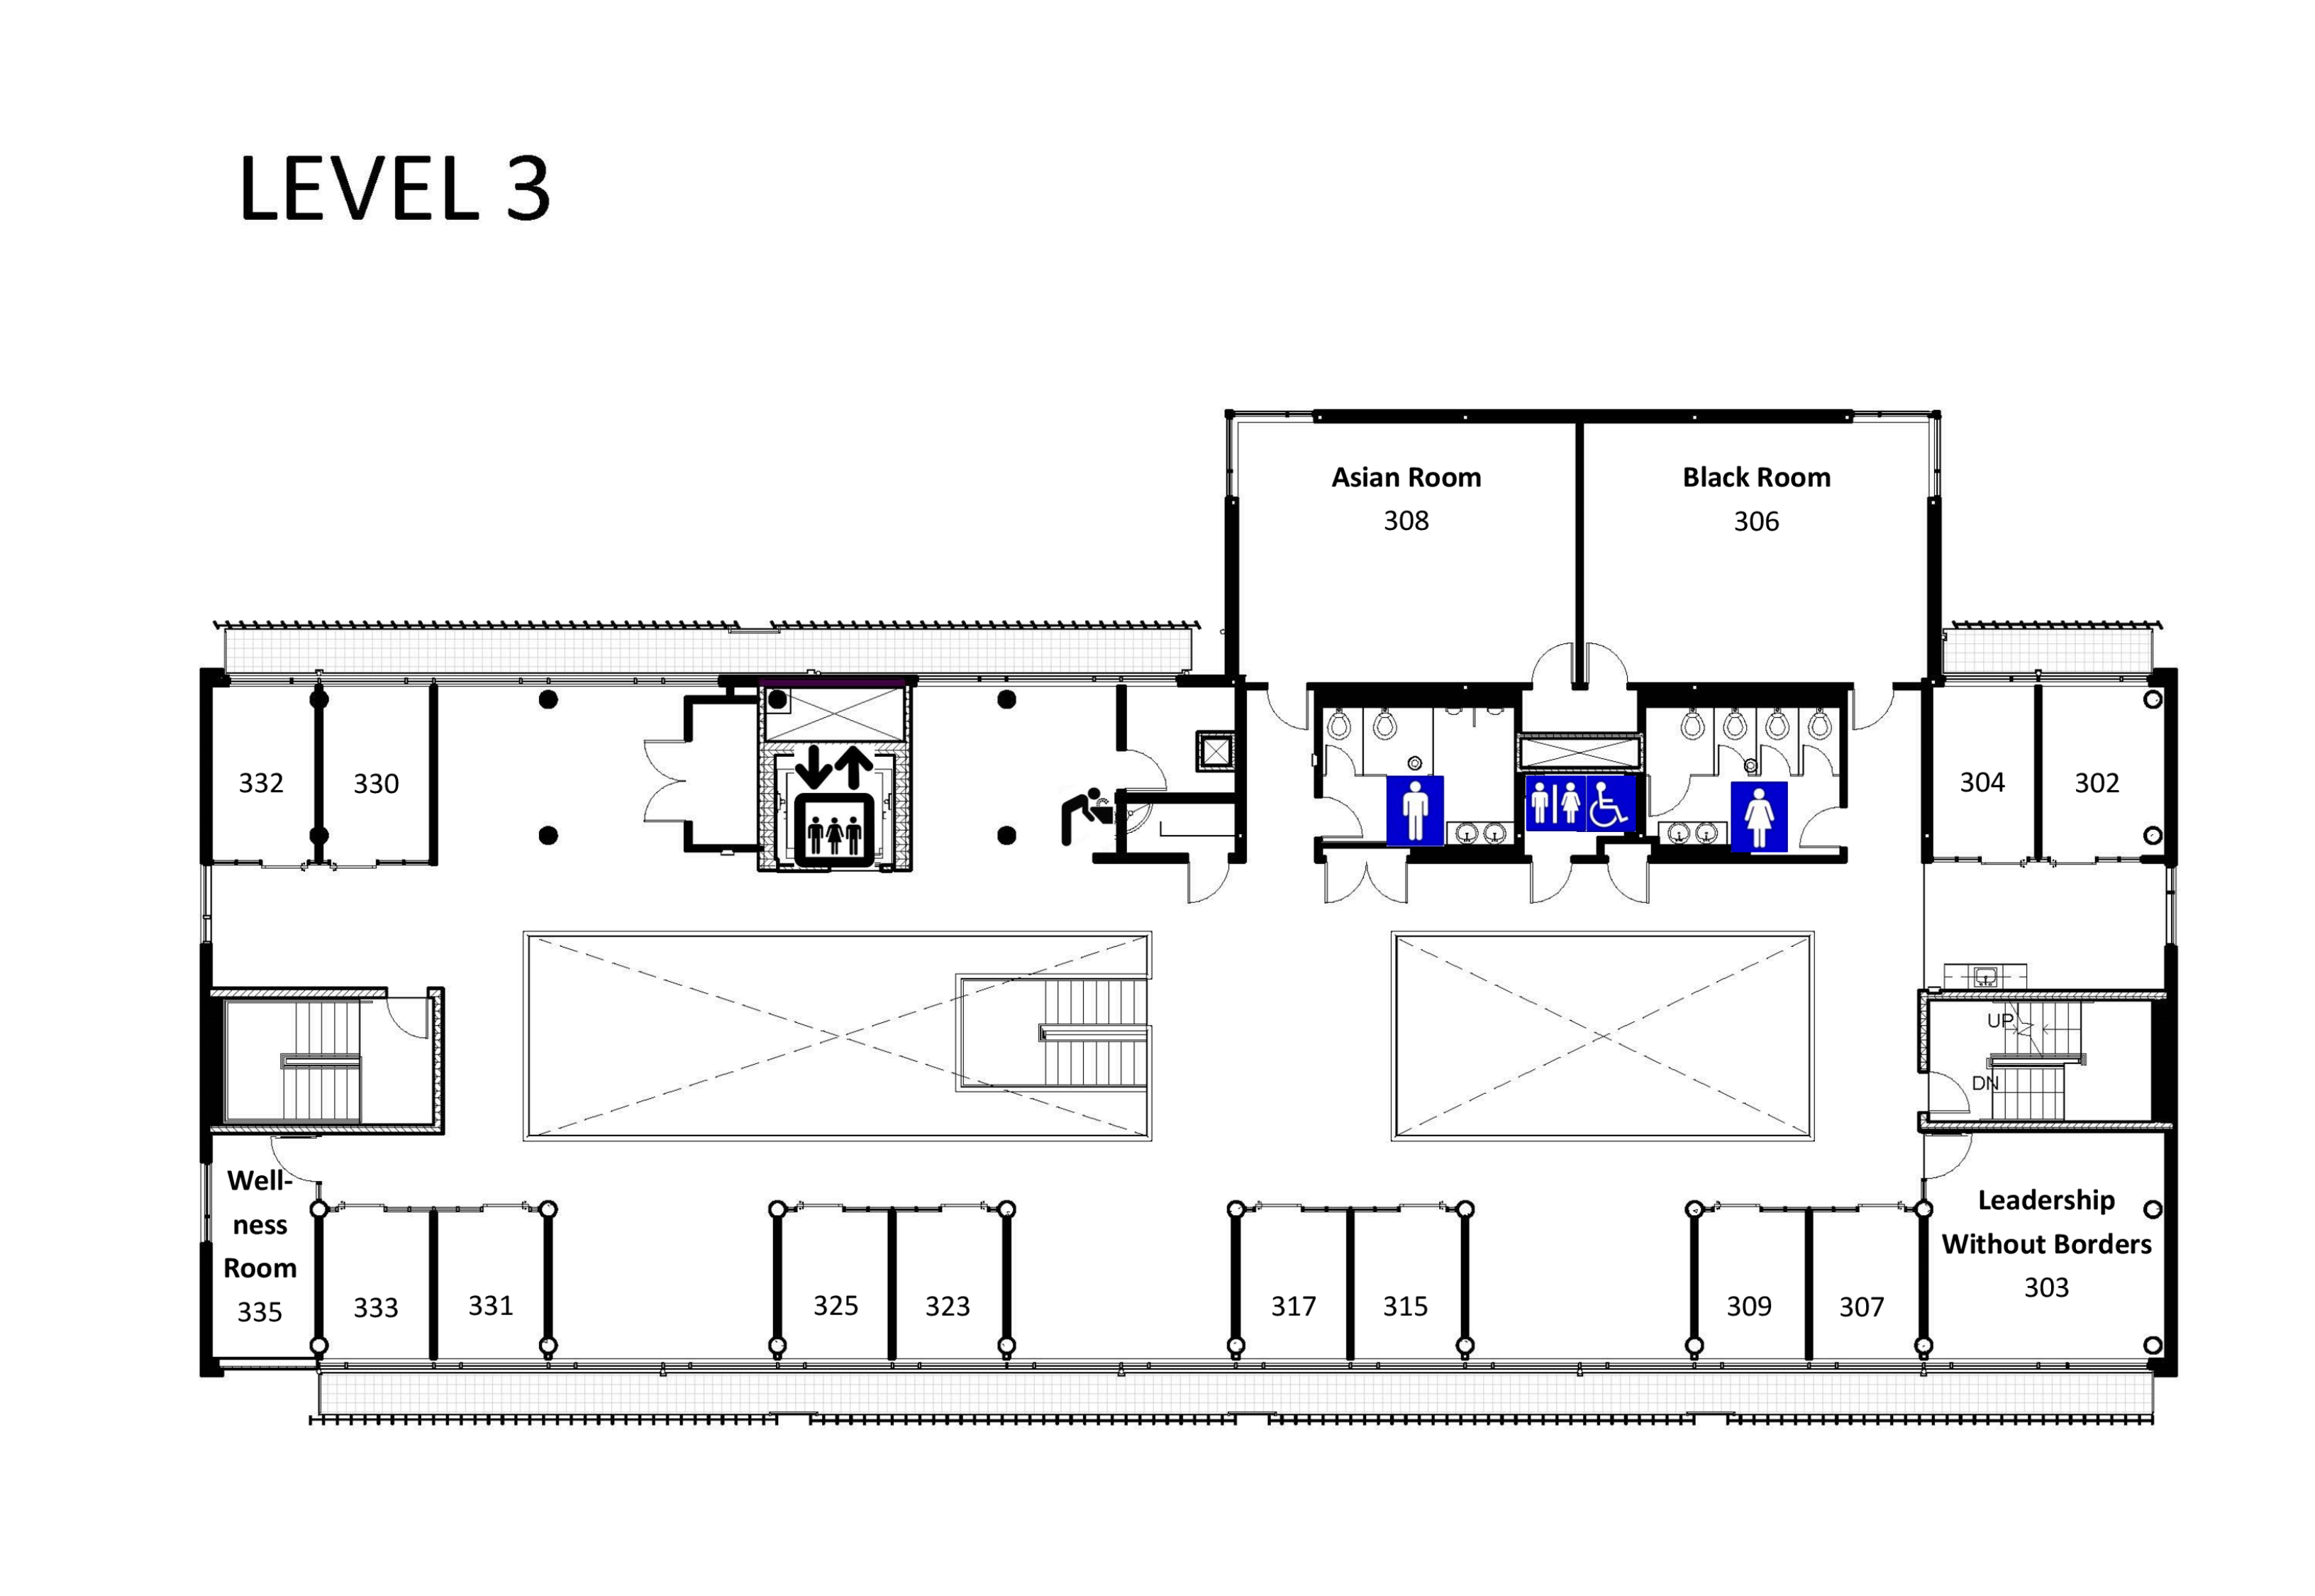 Floor Plans And Room Layouts And Capacity Samuel E